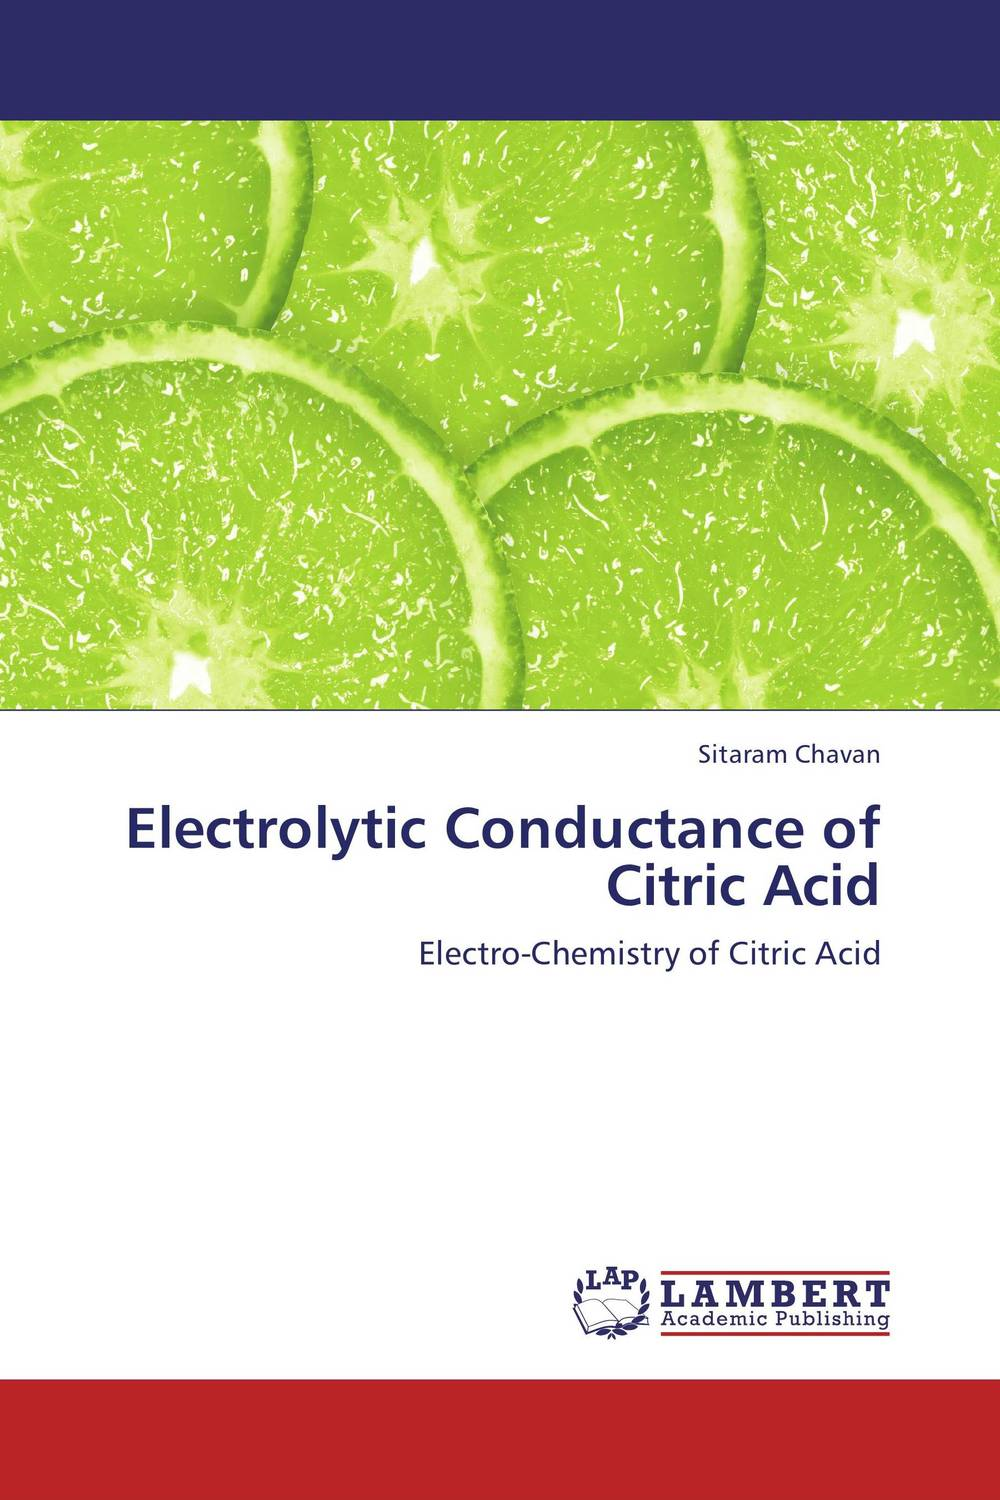 Electrolytic Conductance of Citric Acid